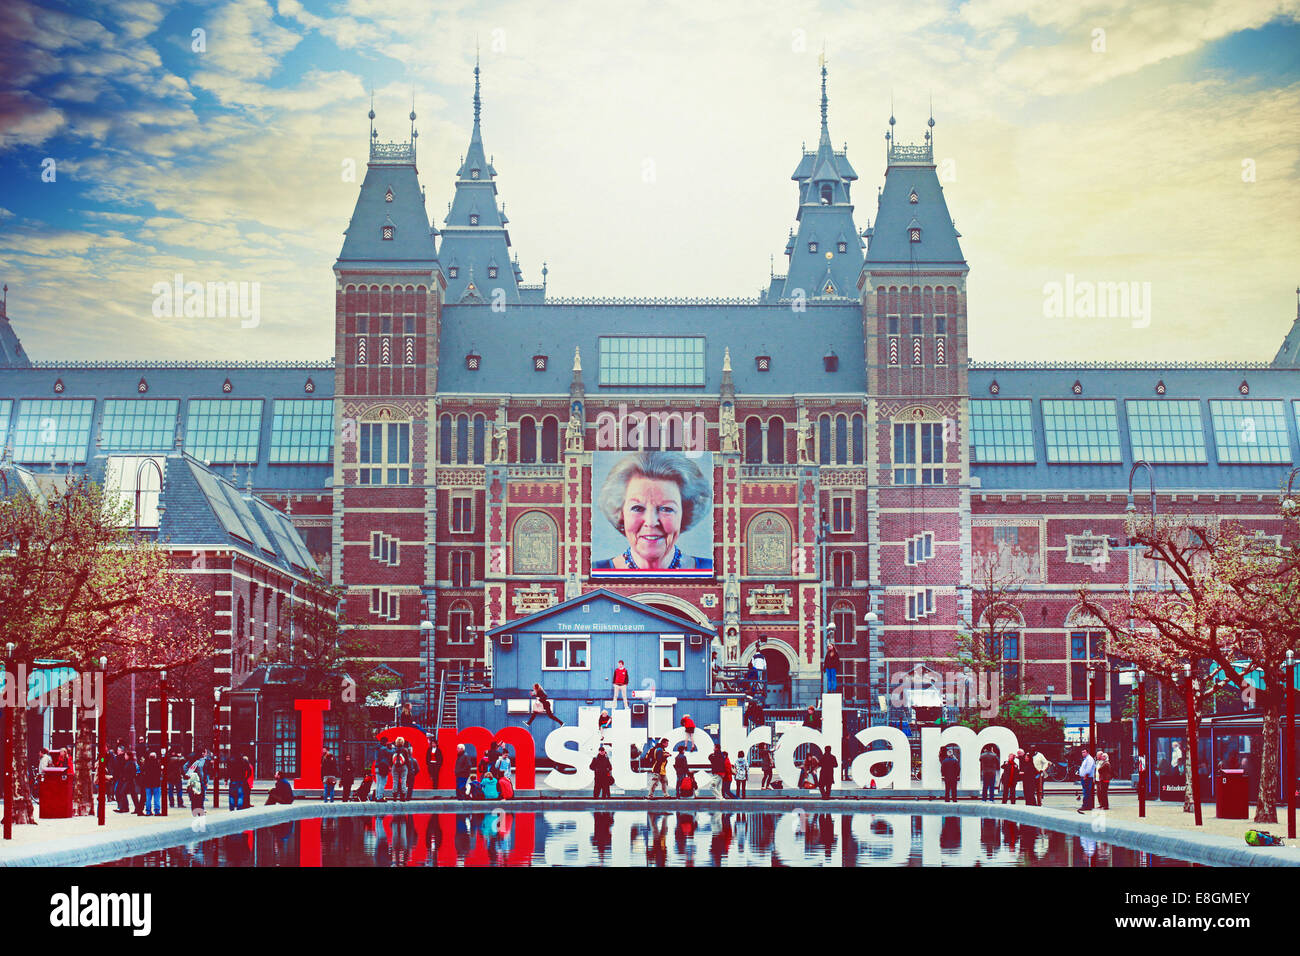 Netherlands, Amsterdam, Front view of Rijksmuseum - Stock Image